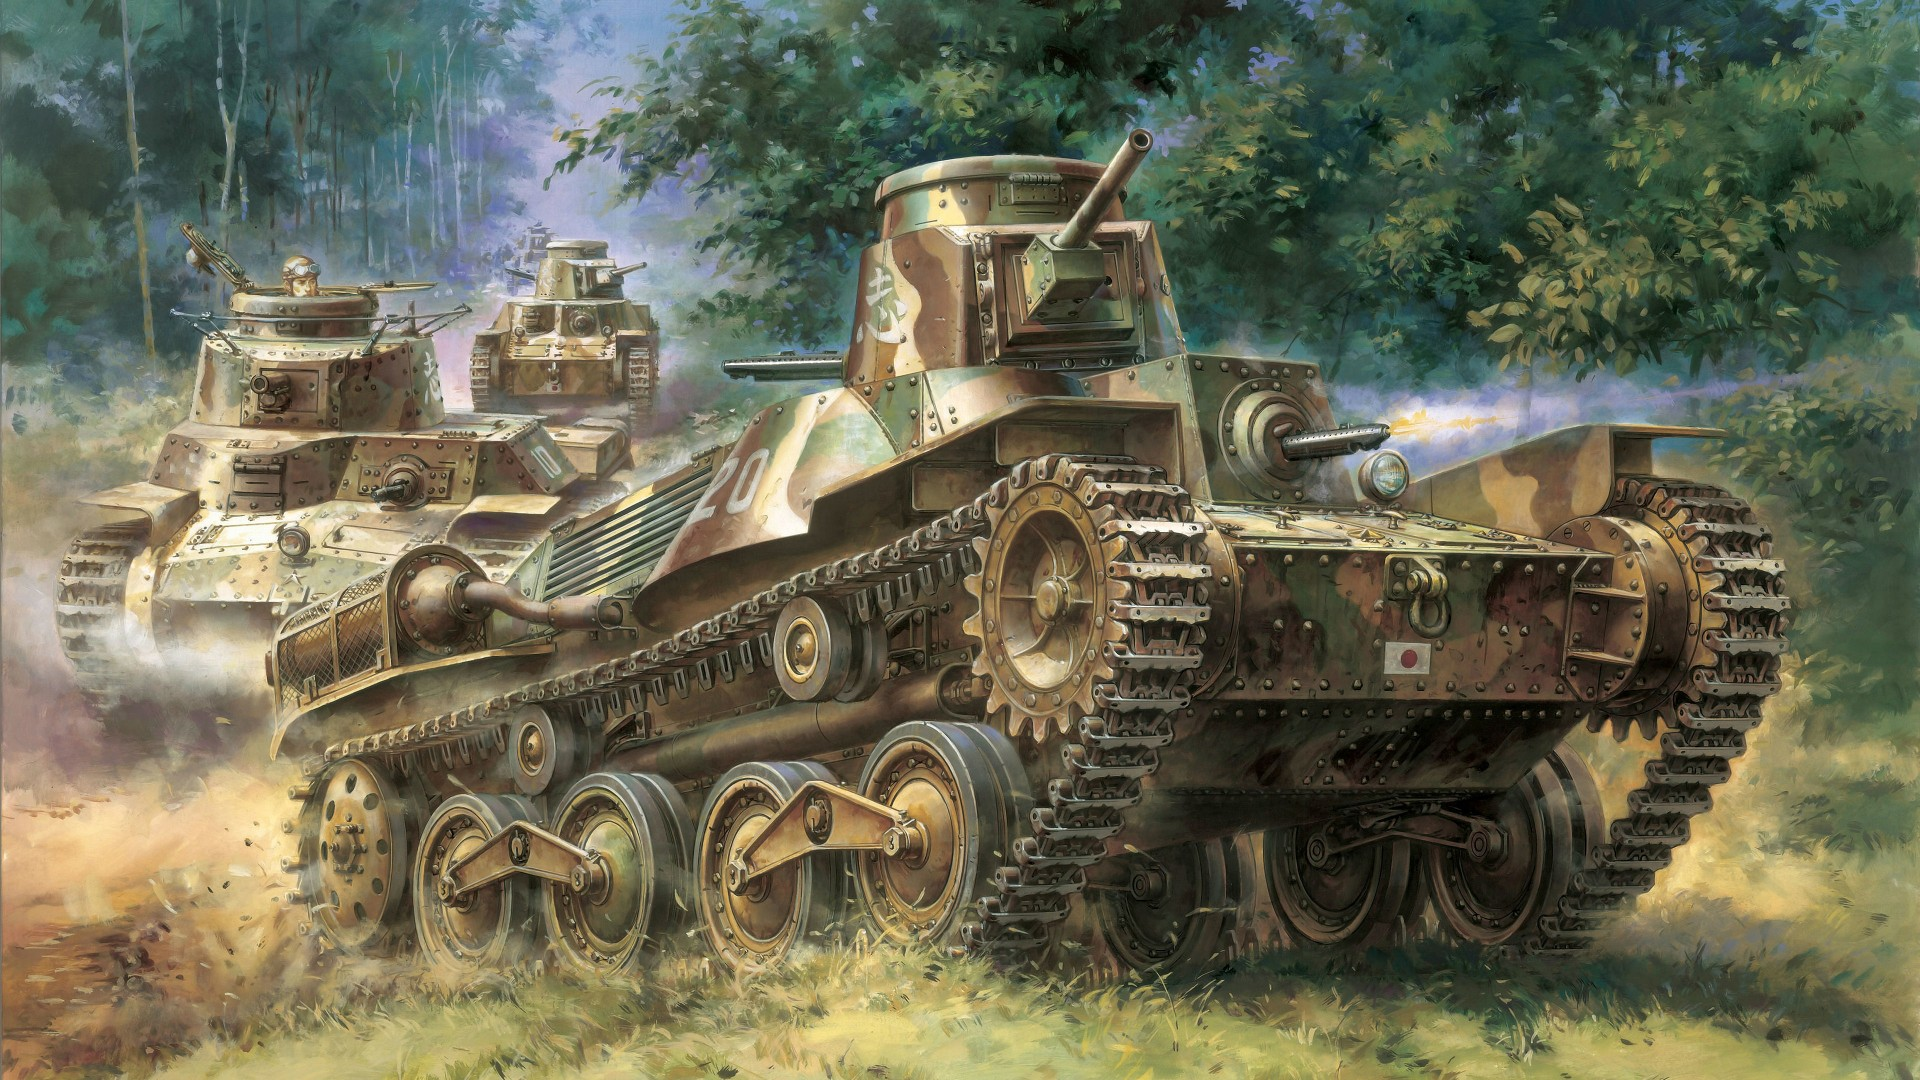 Go Army Wallpaper: Tank Full HD Wallpaper And Background Image